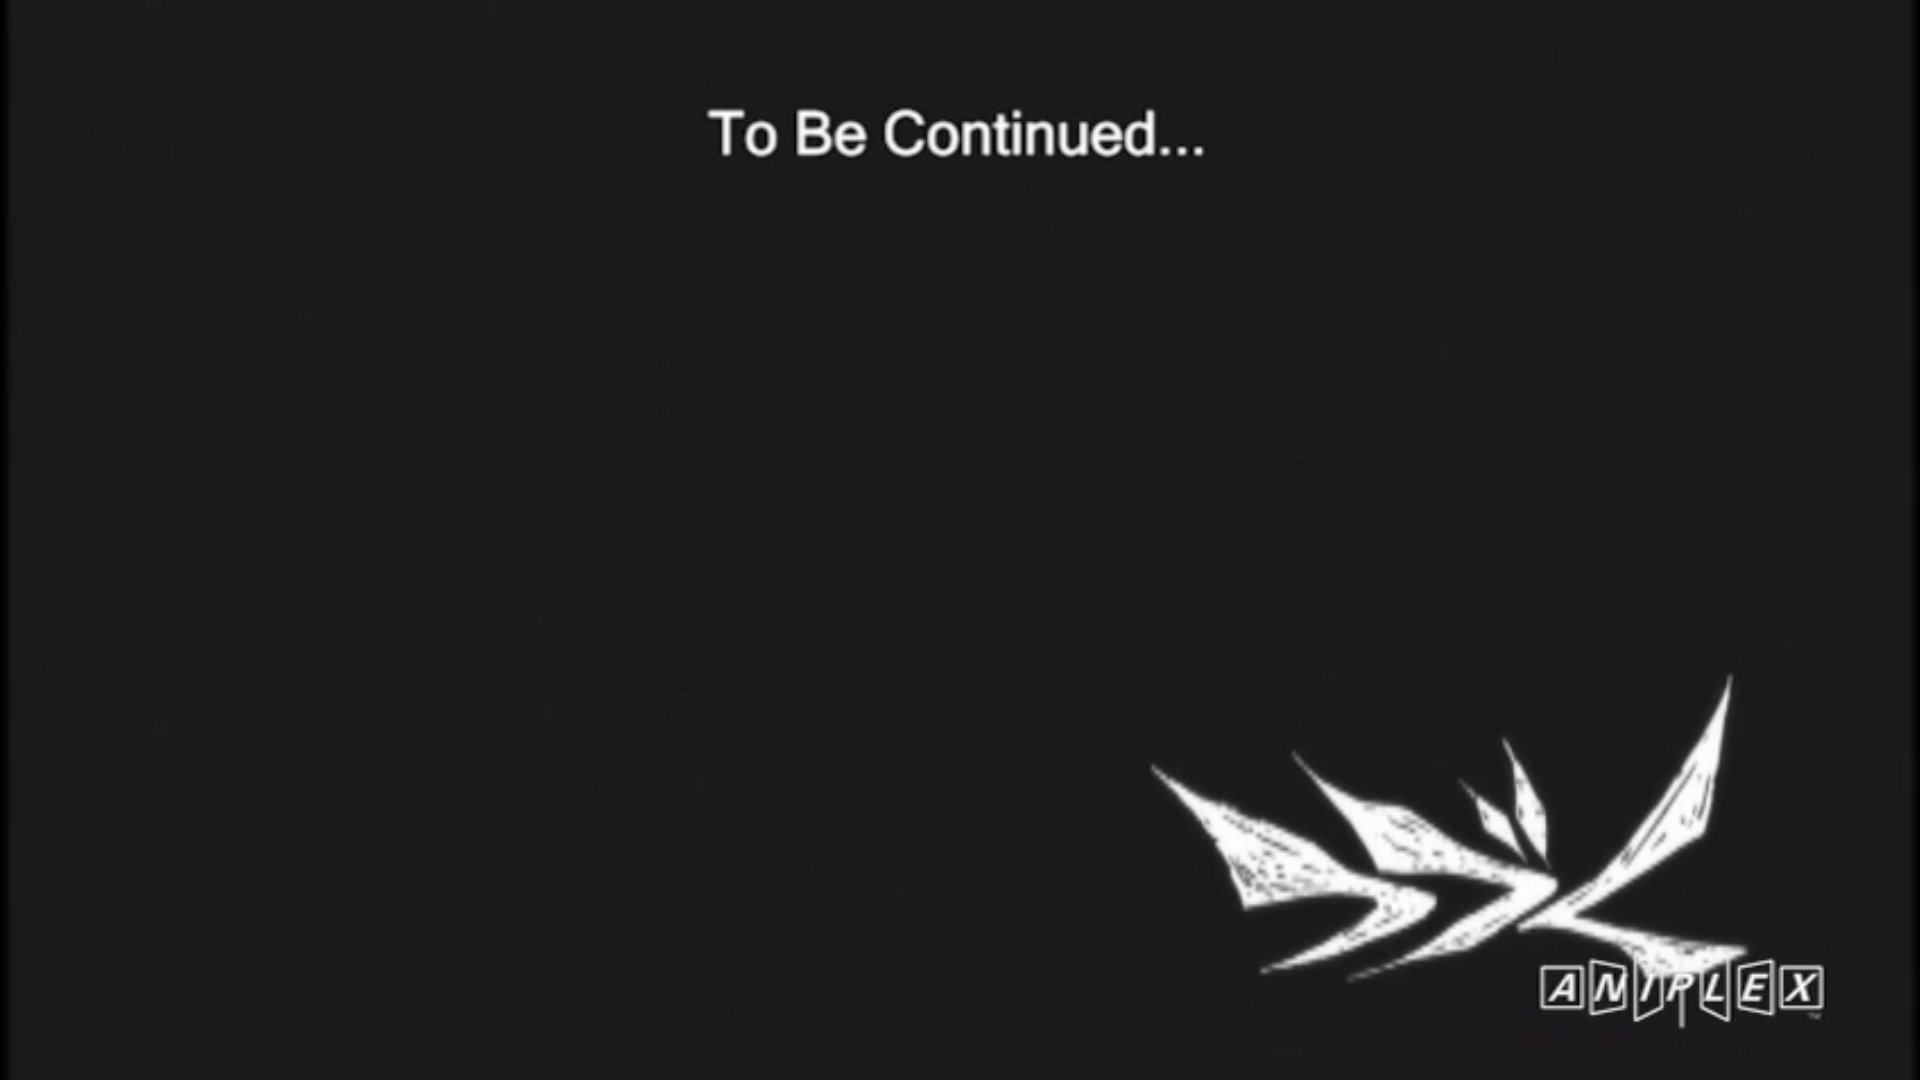 To Be Continued Screen Gurren Lagaan Movie Posters Typography Caligraphy